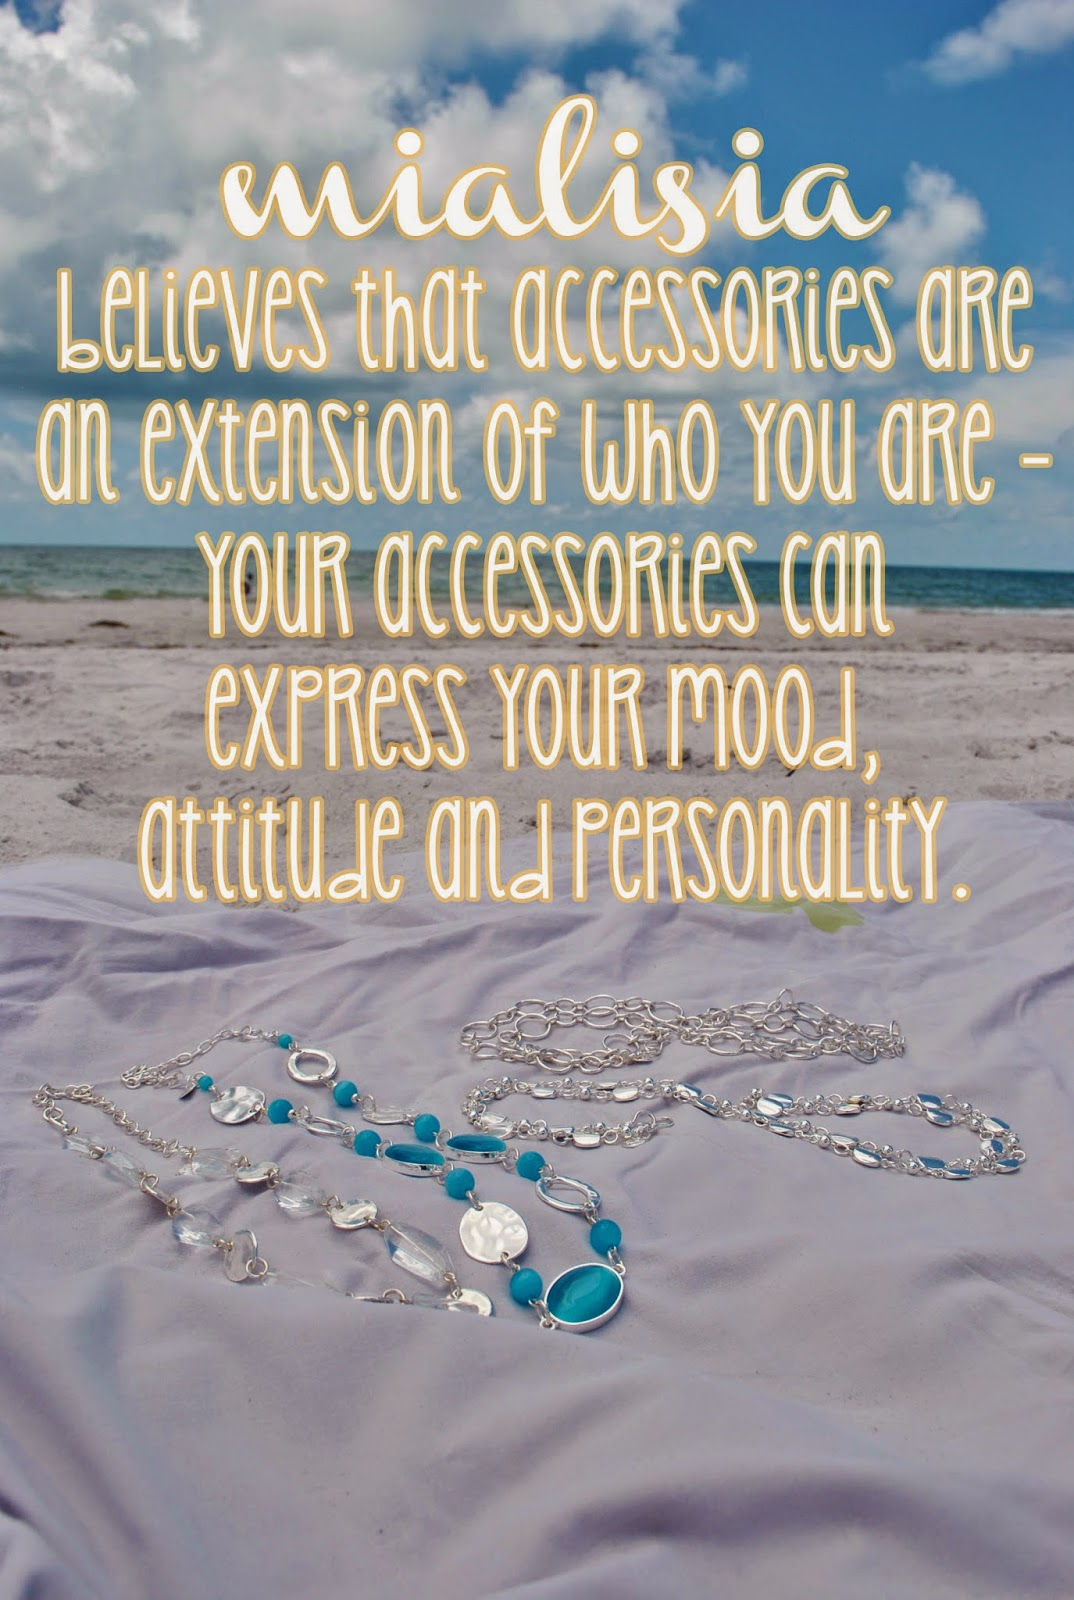 Lauren Paints | a beautiful life: The Mialisia Jewelry Story - {Accessories are an extension of who you are!} & a Jewelry GIVEAWAY {ends 7/31}